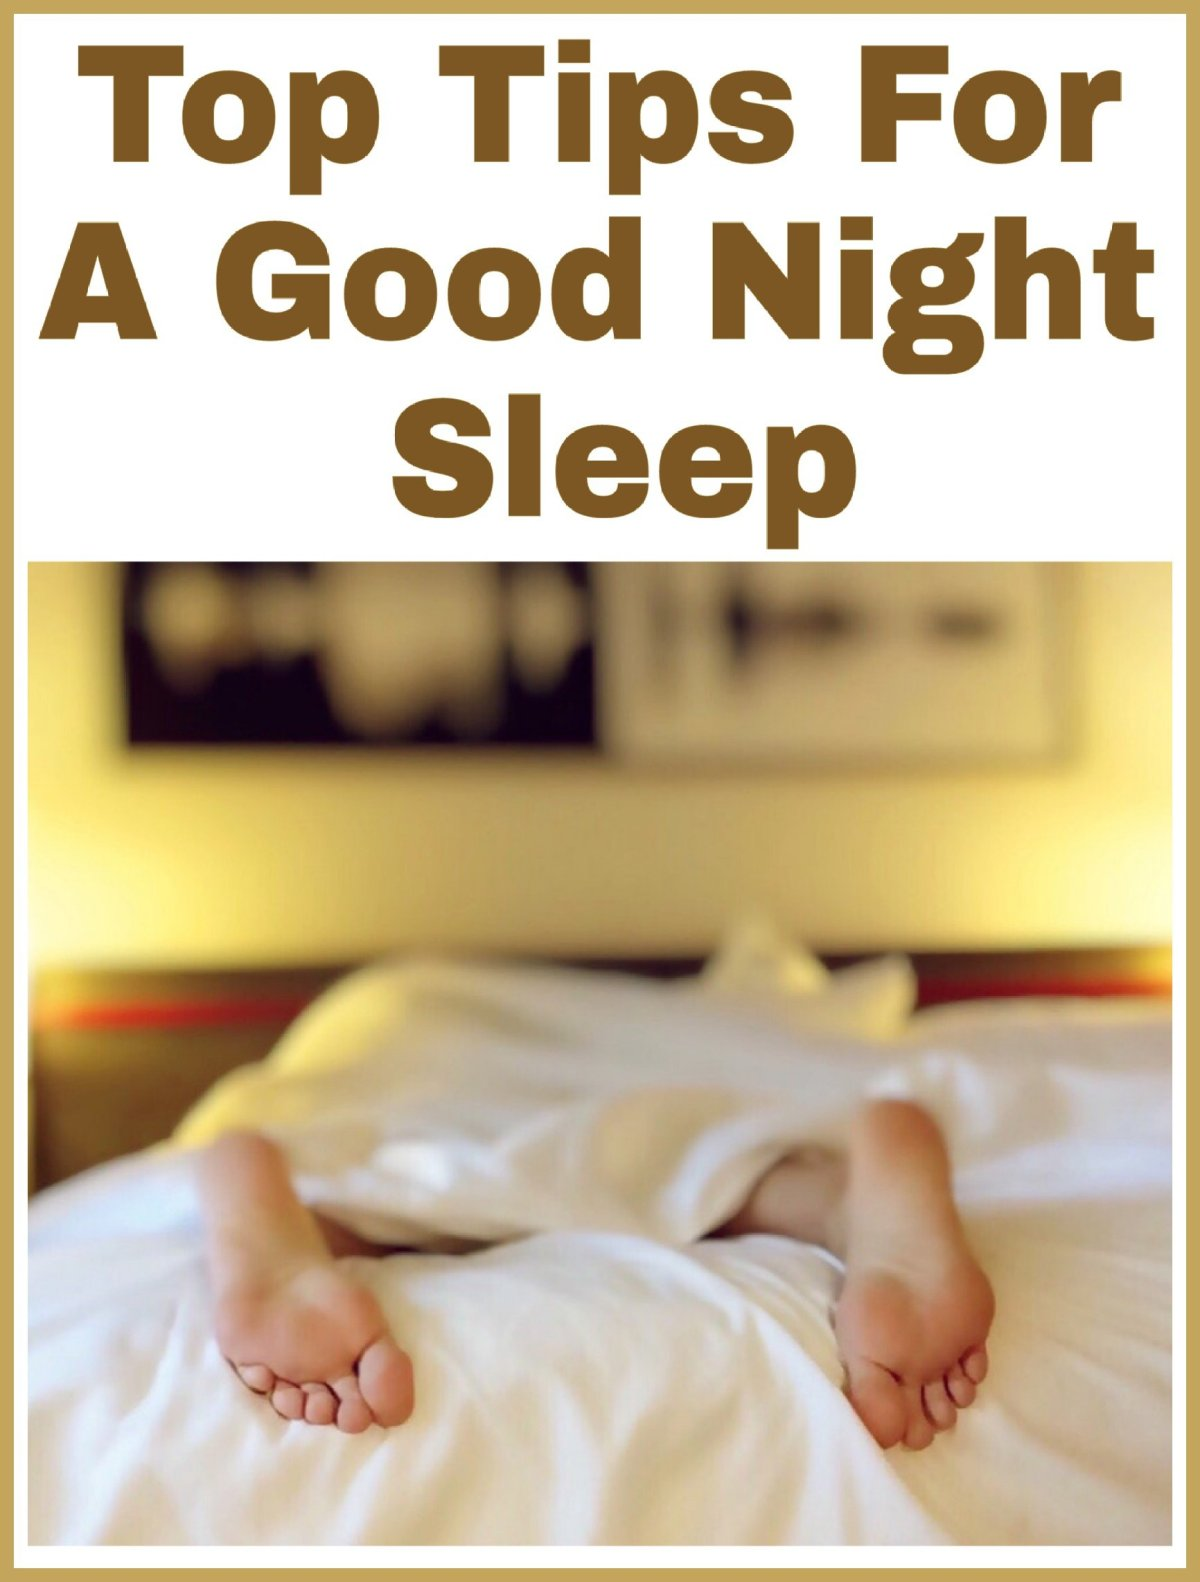 Top Tips For A Good Night Sleep